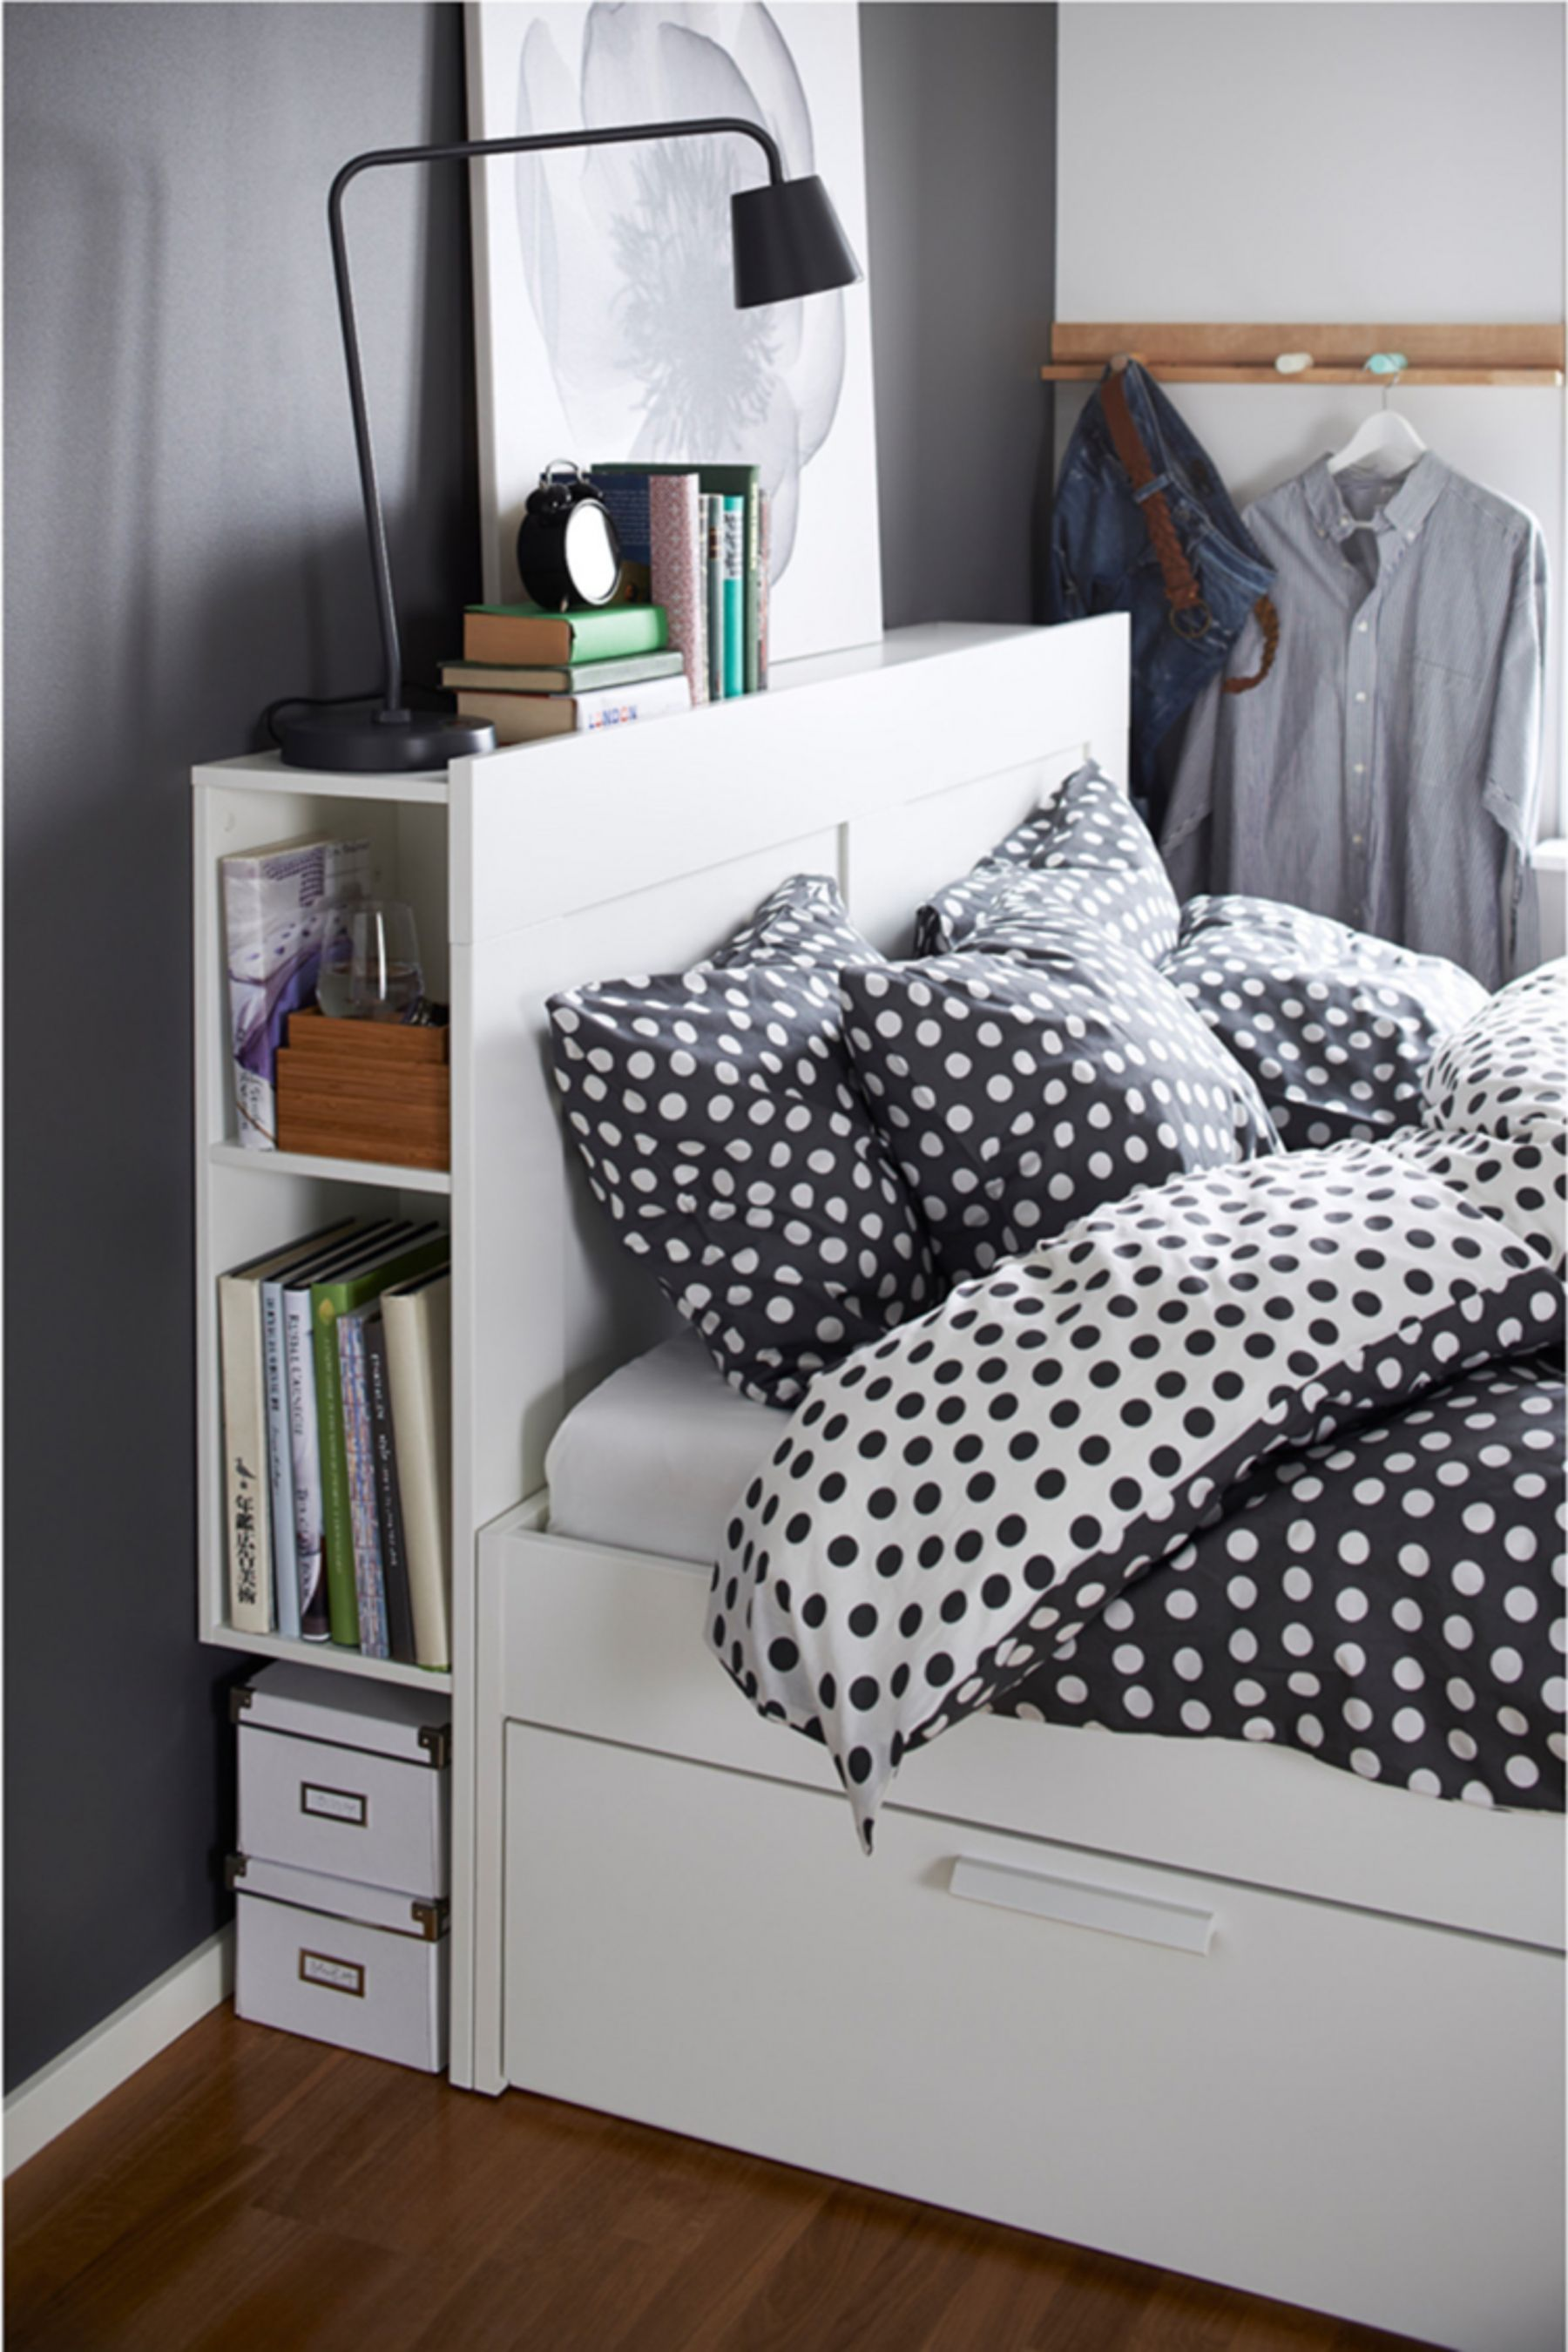 Dormitorios Pequeños Ikea 15 Creative Bedroom Storage Design Ideas Decoración Habitaciones